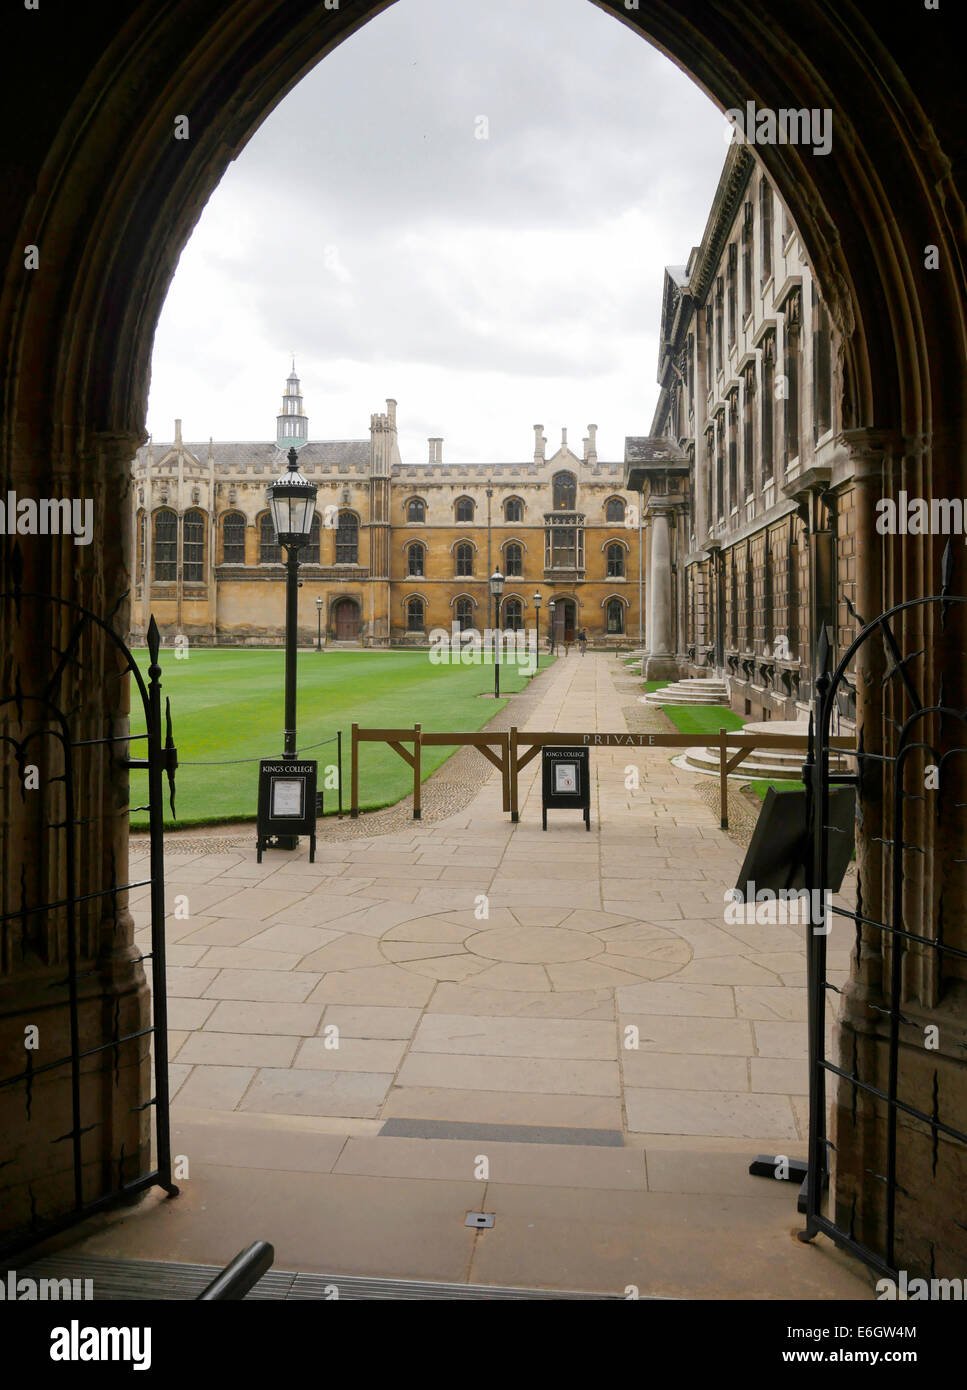 King's College Cambridge University Cambridge England - Stock Image